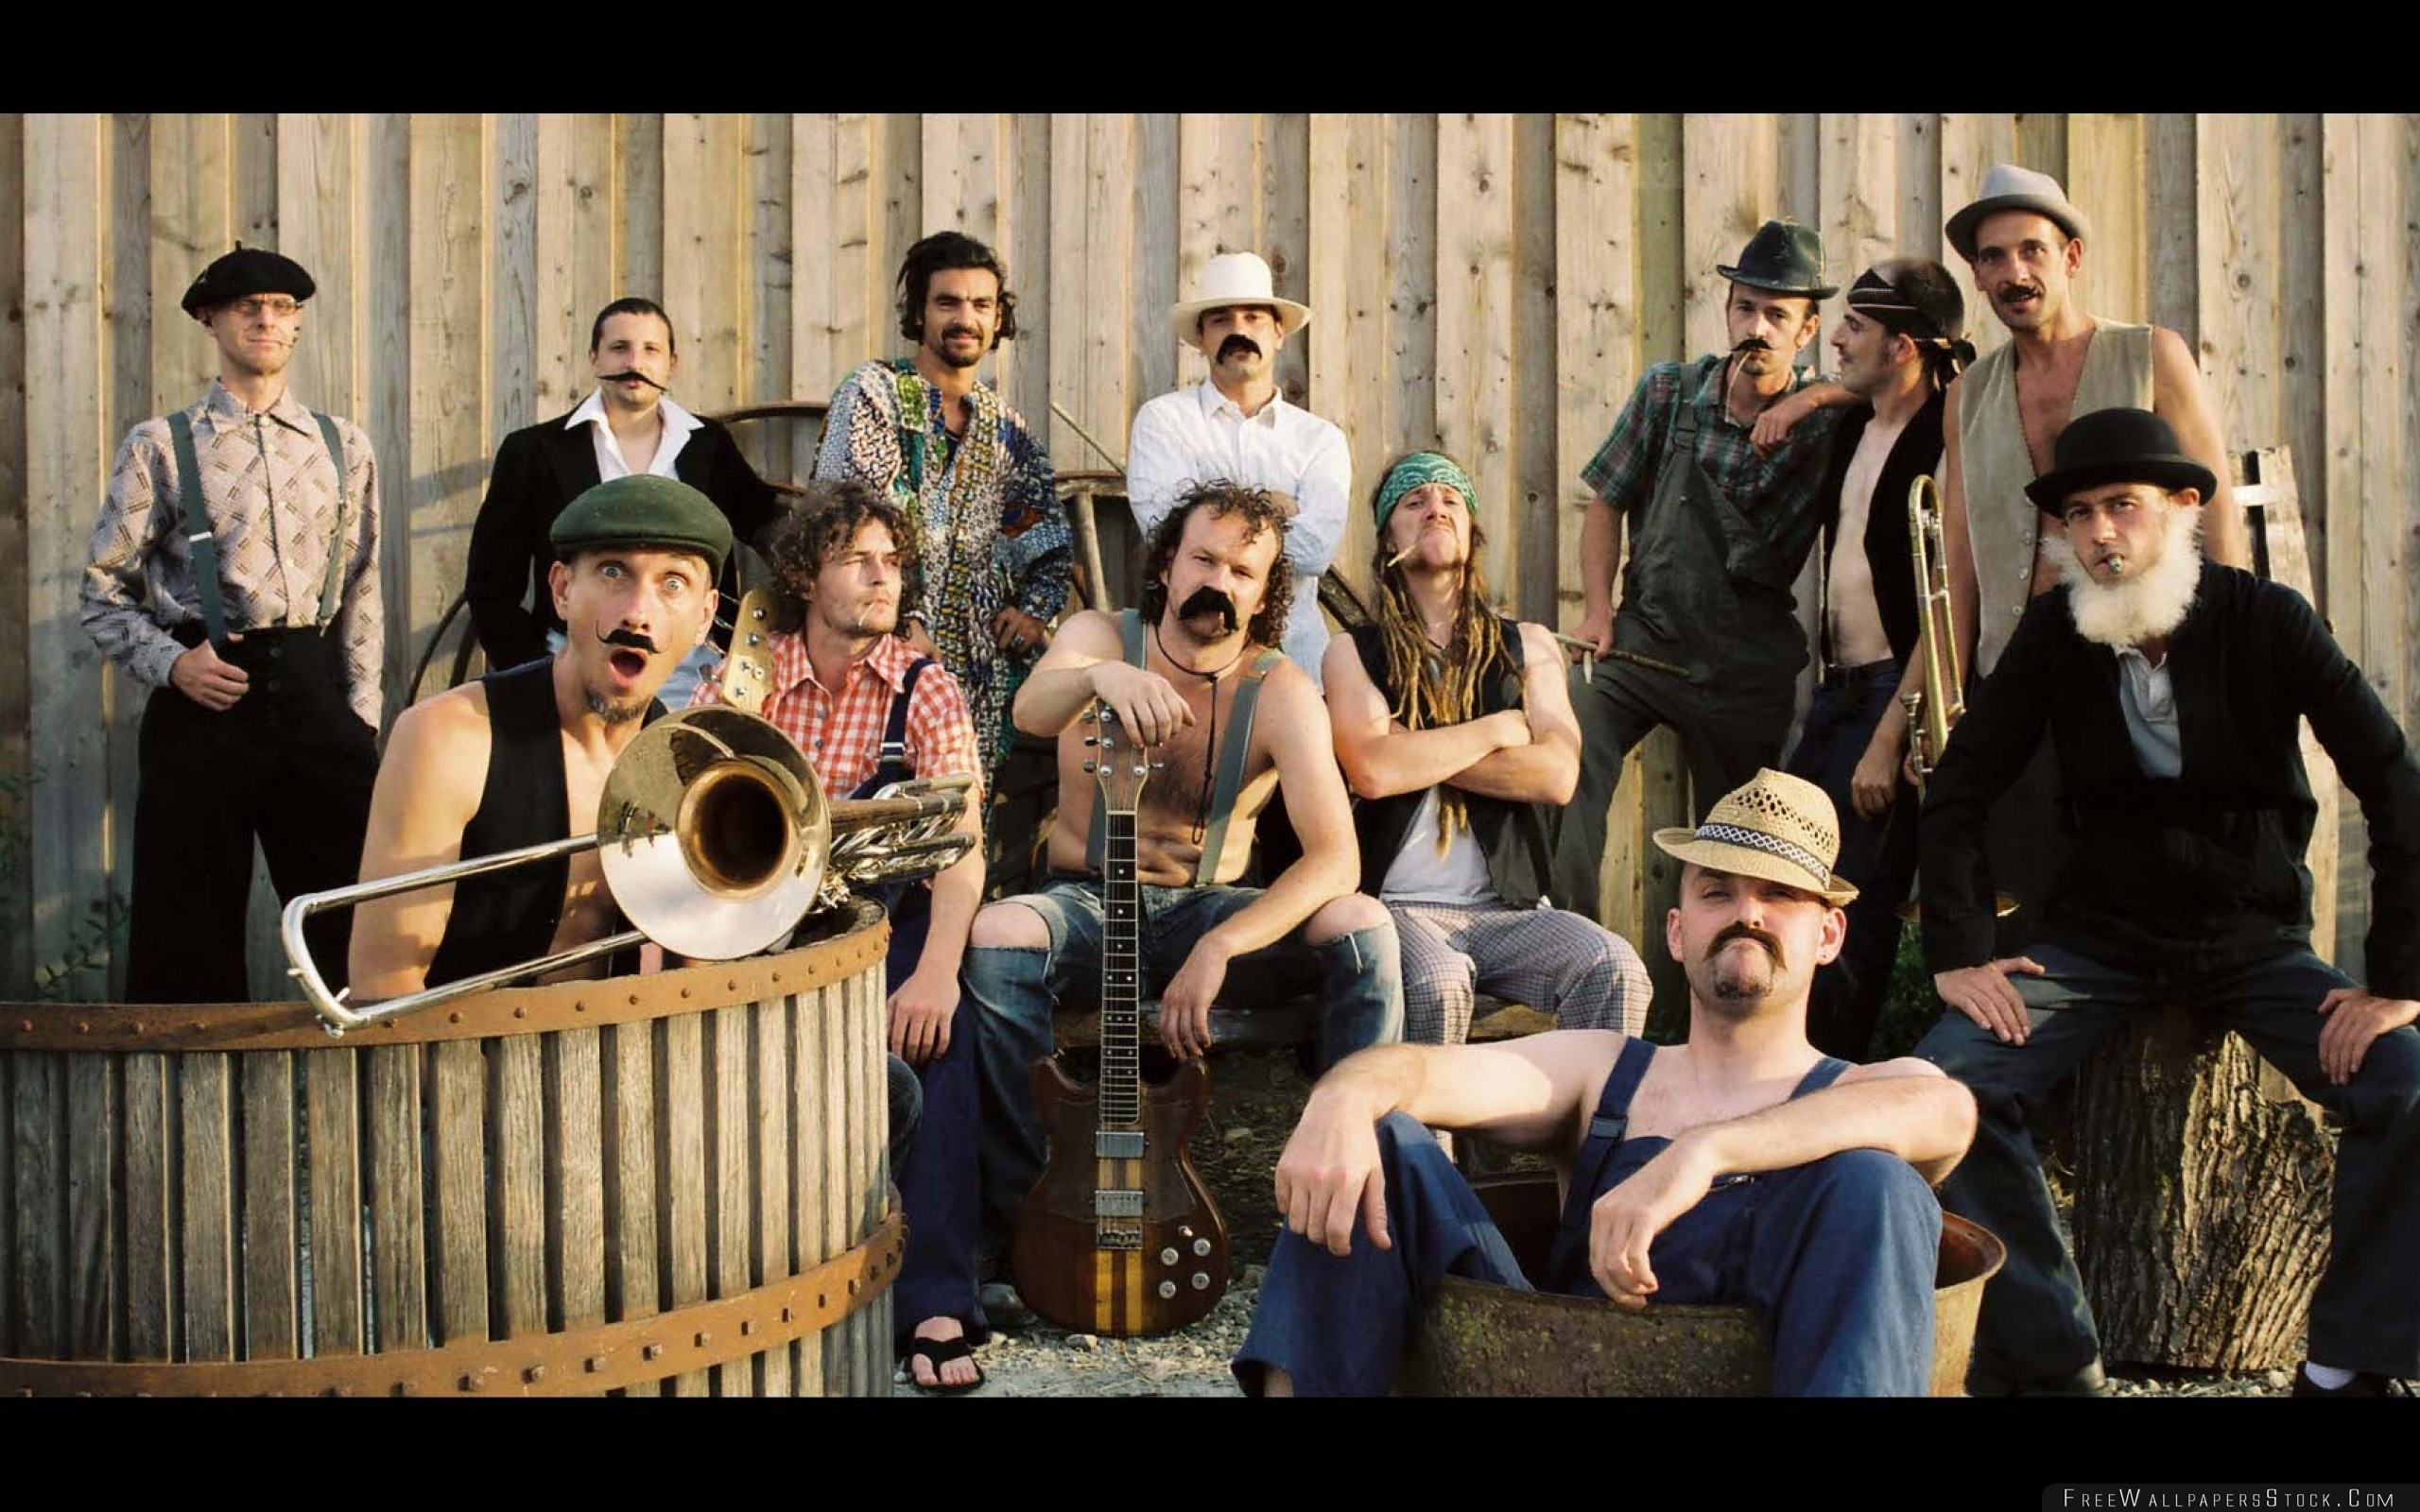 Download Free Wallpaper Percubaba Band Instruments Mustache Wall